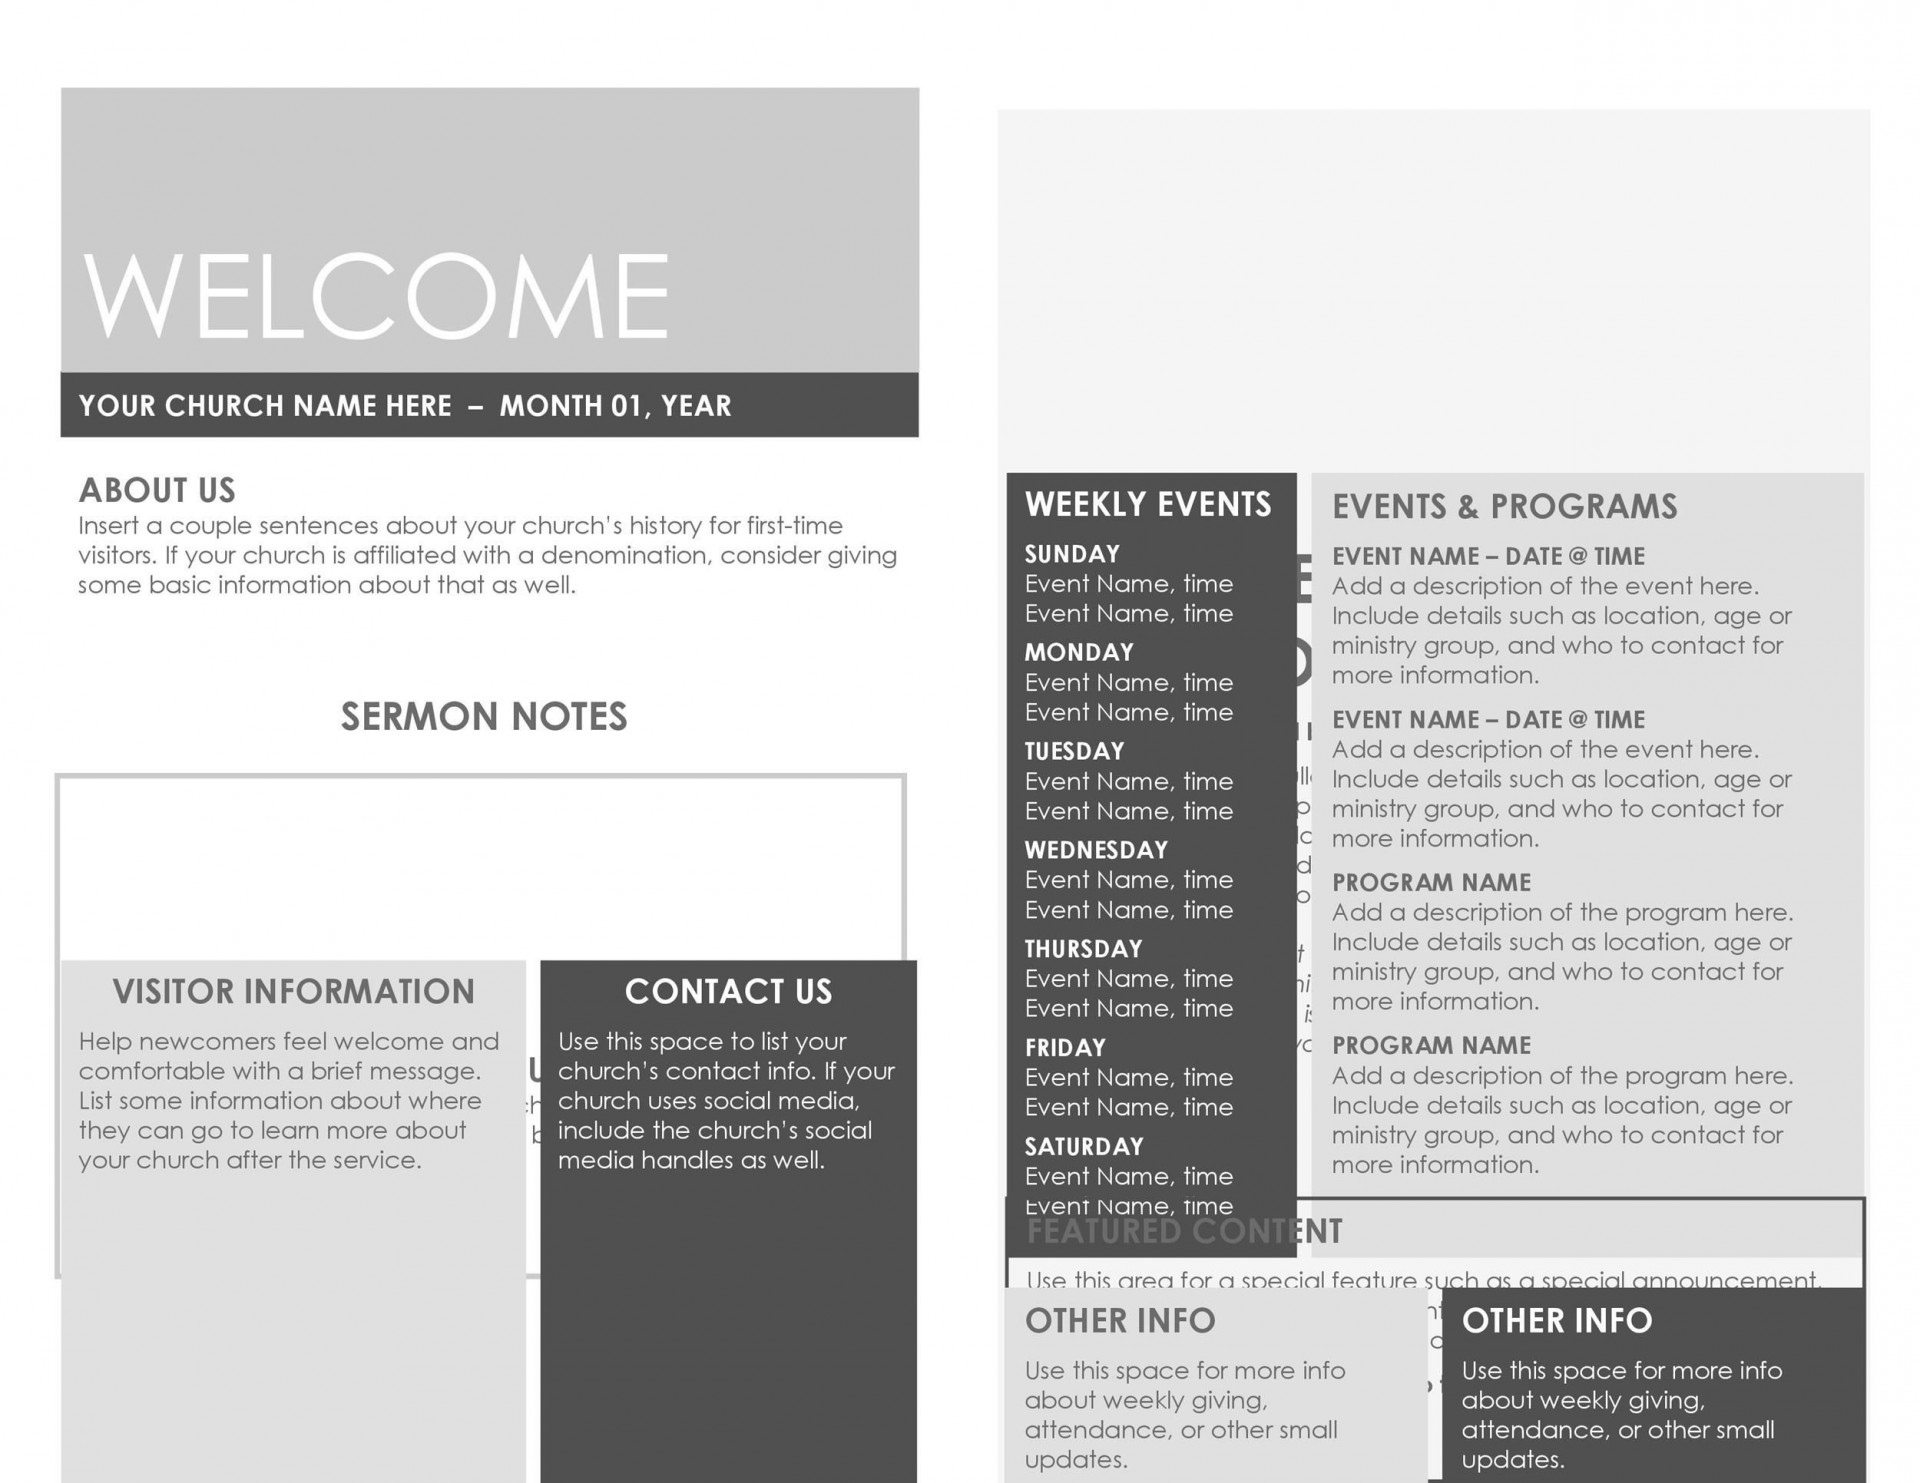 009 Best Free Church Program Template Design Image 1920